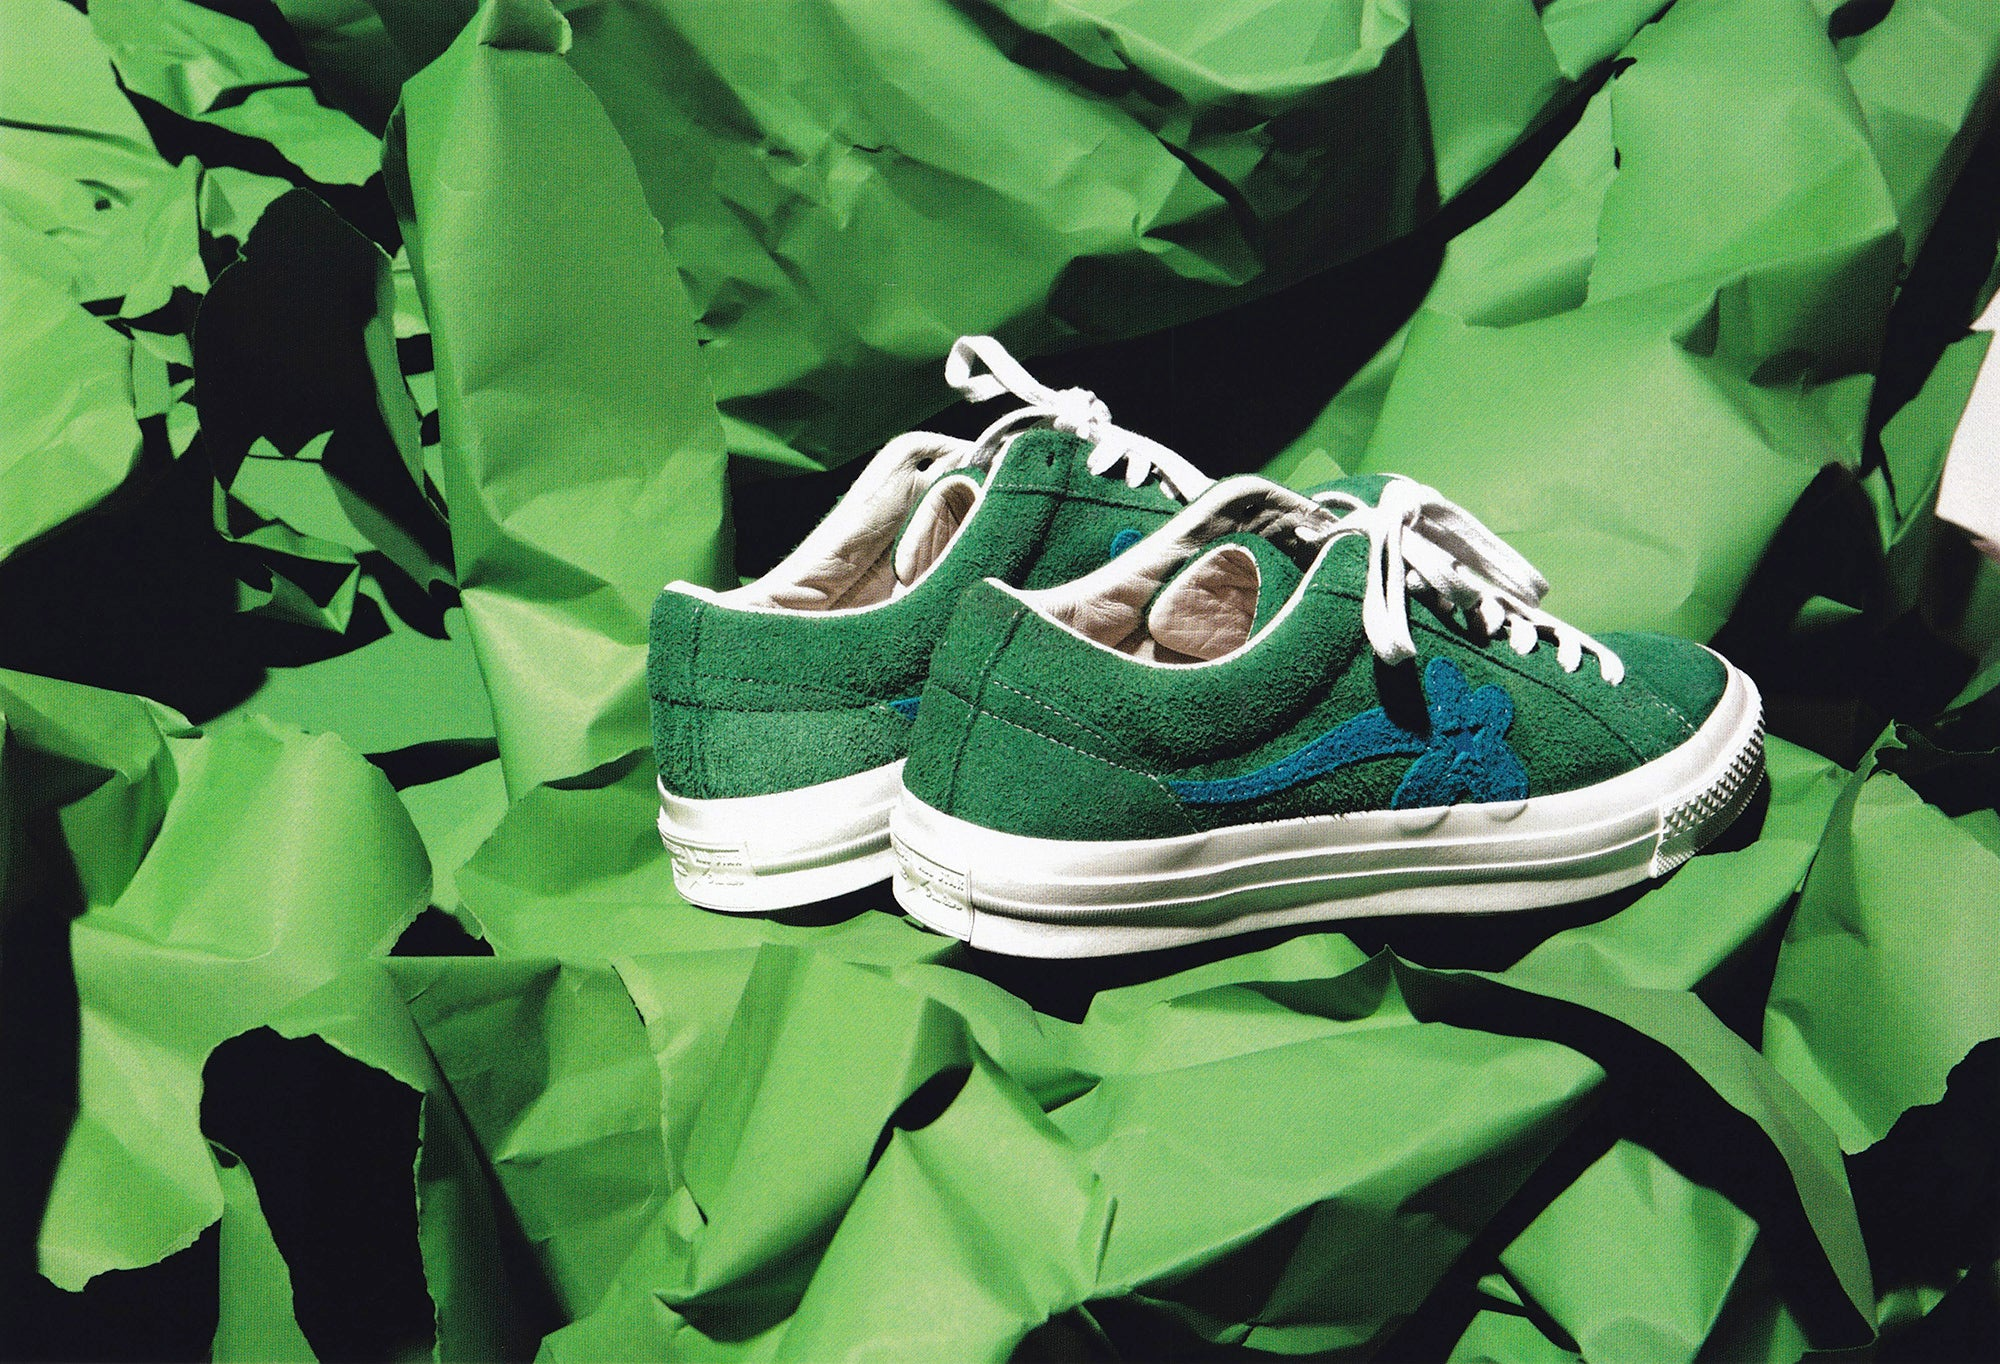 819da6c46050 Converse x Tyler the Creator  Golf Le Fleur  One Stars